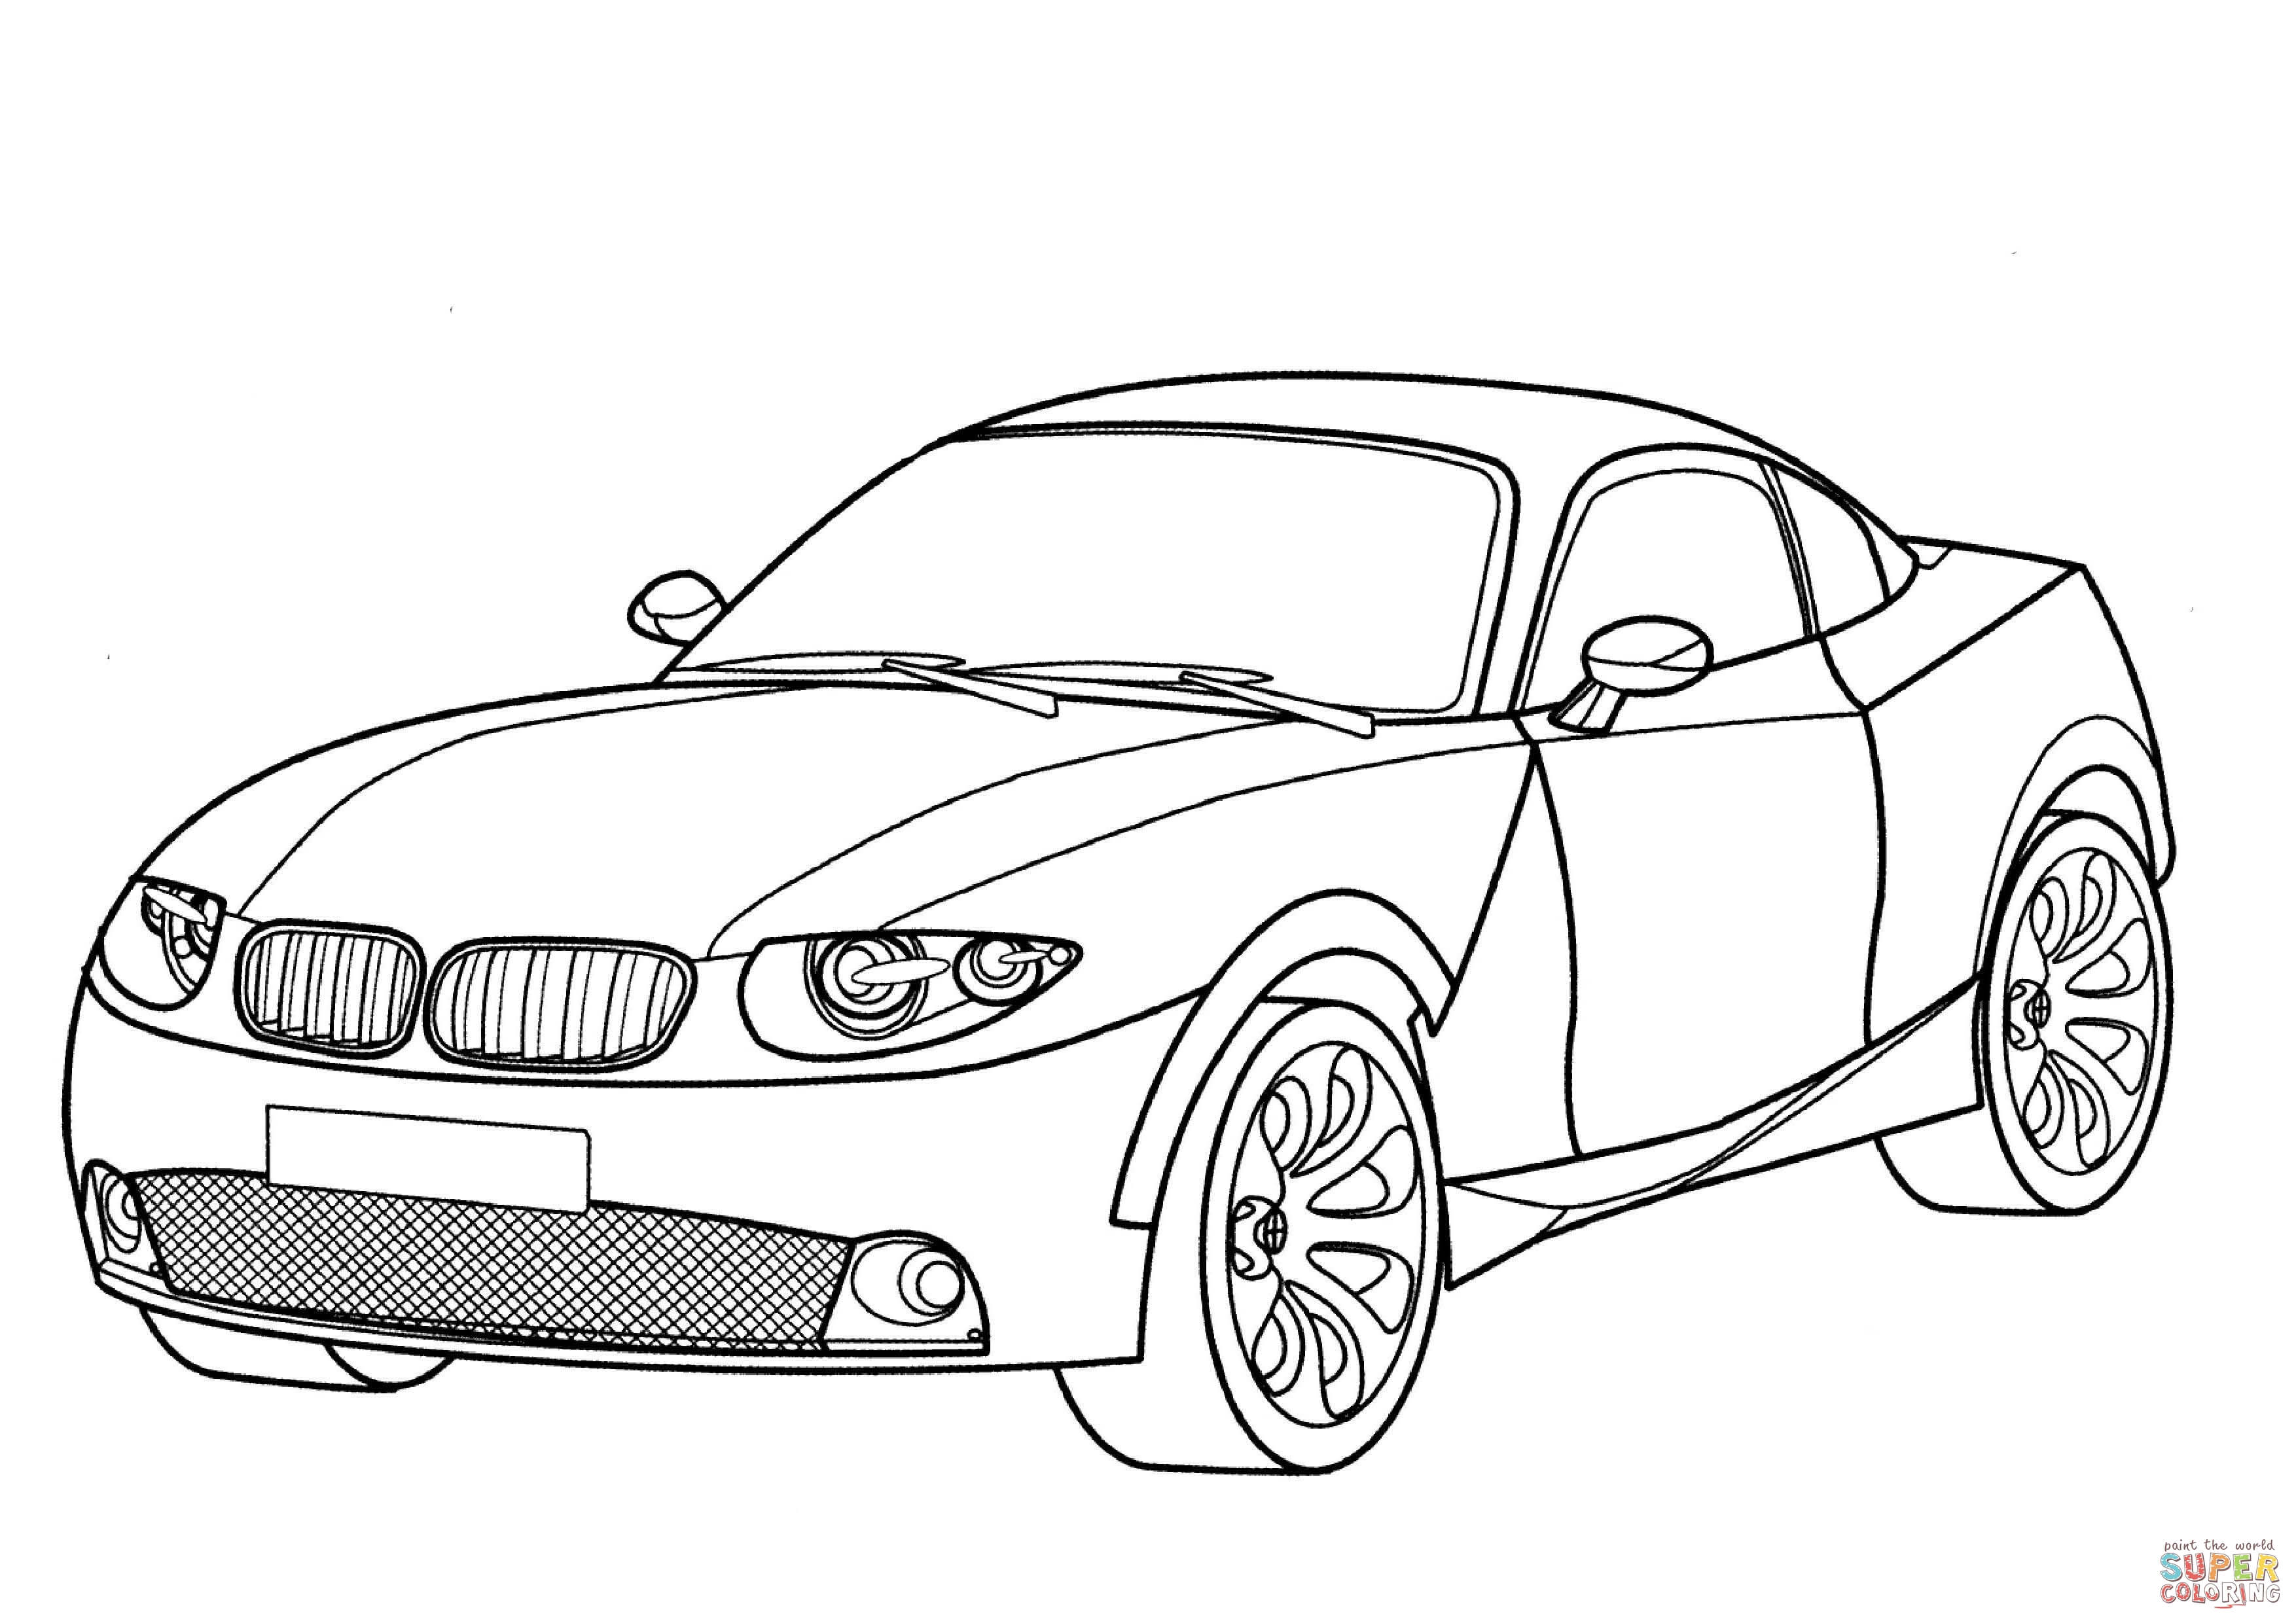 Bmw X Coupe Coloring Page Free Printable Coloring Pages